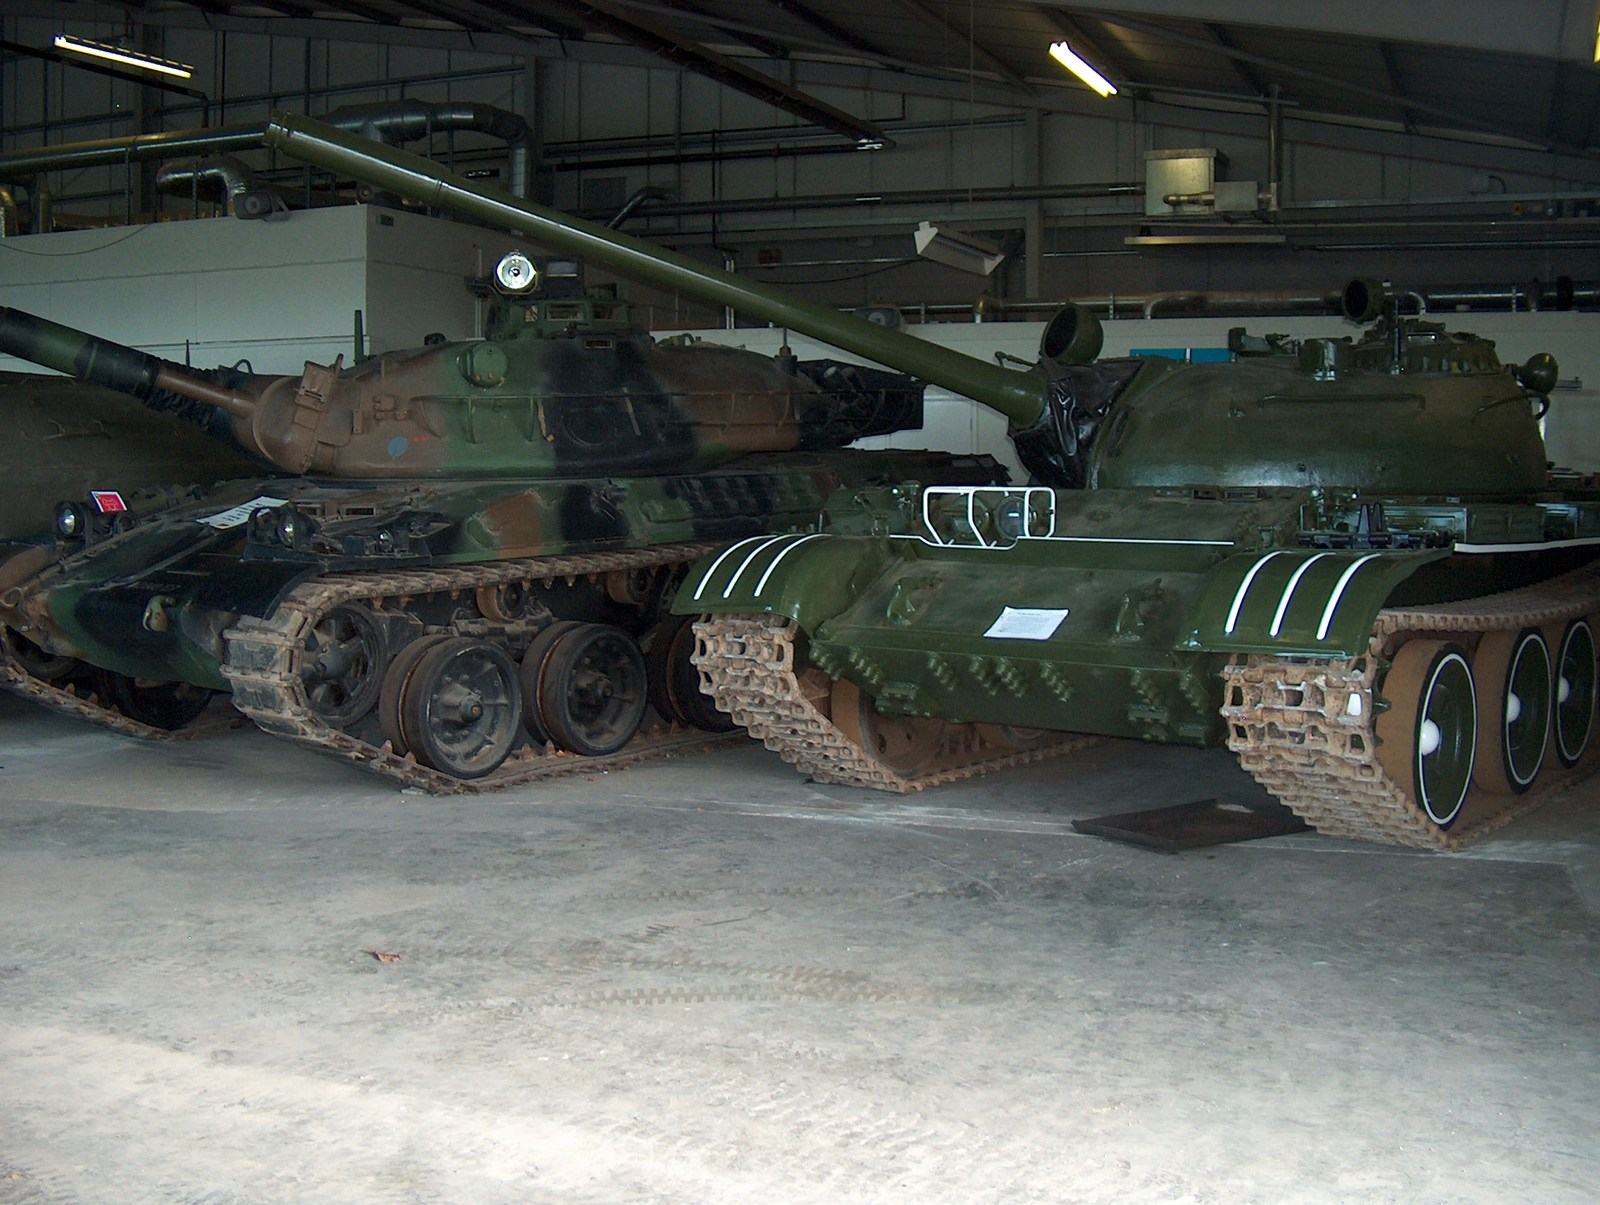 AMX-30 and T-54